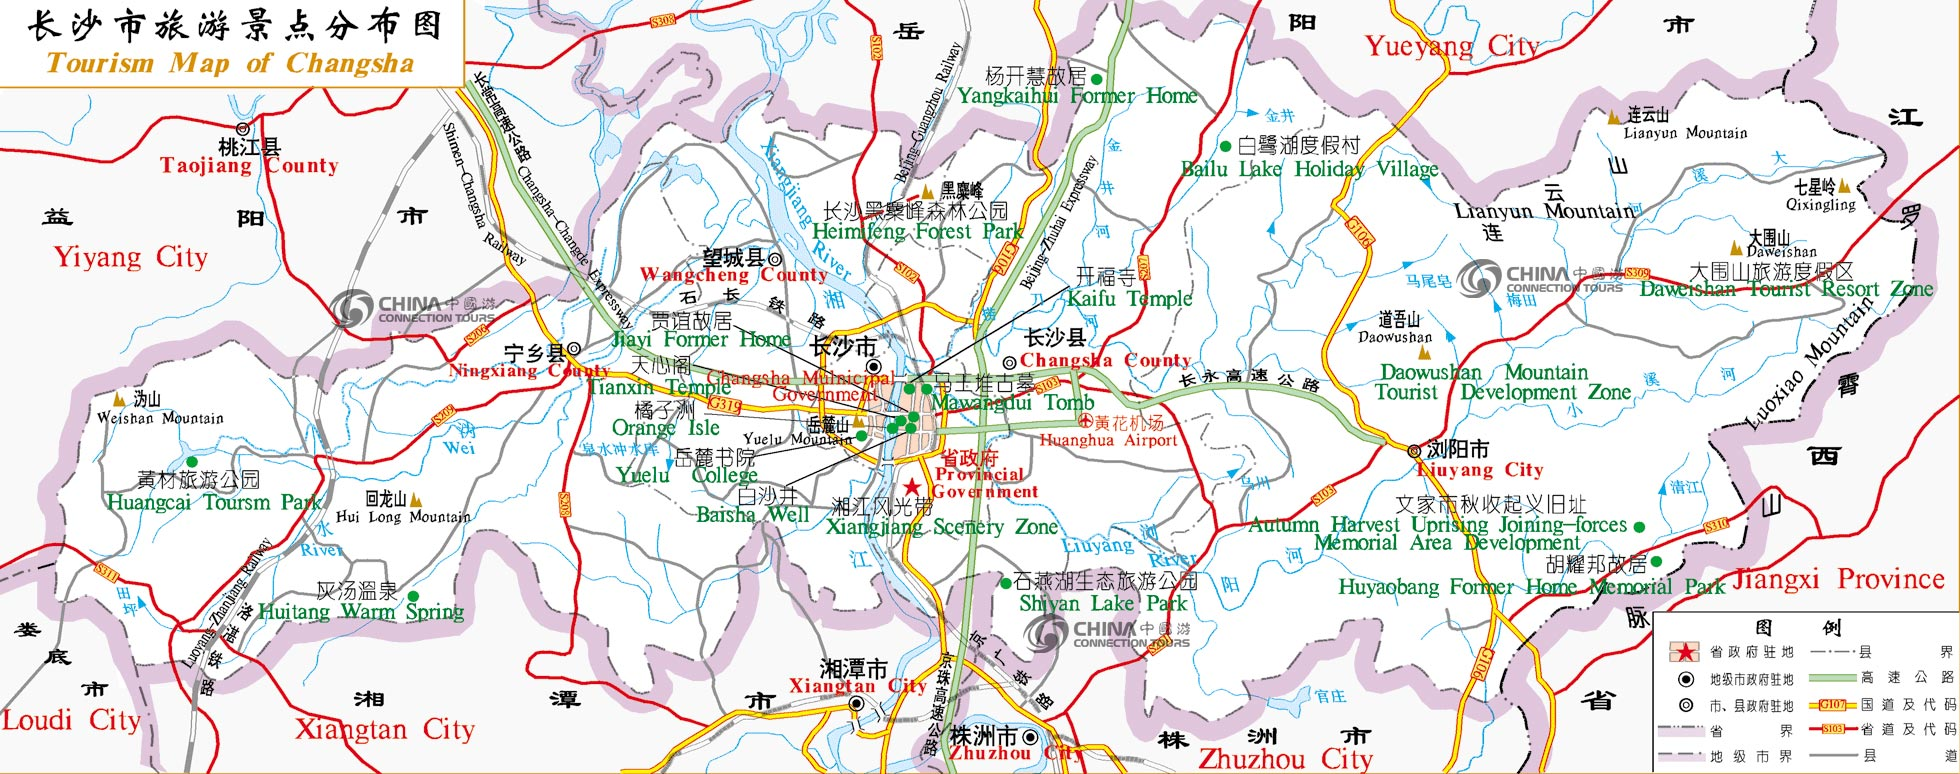 Hunan changsha city map zhangjiajie tourism information website hunan changsha city map gumiabroncs